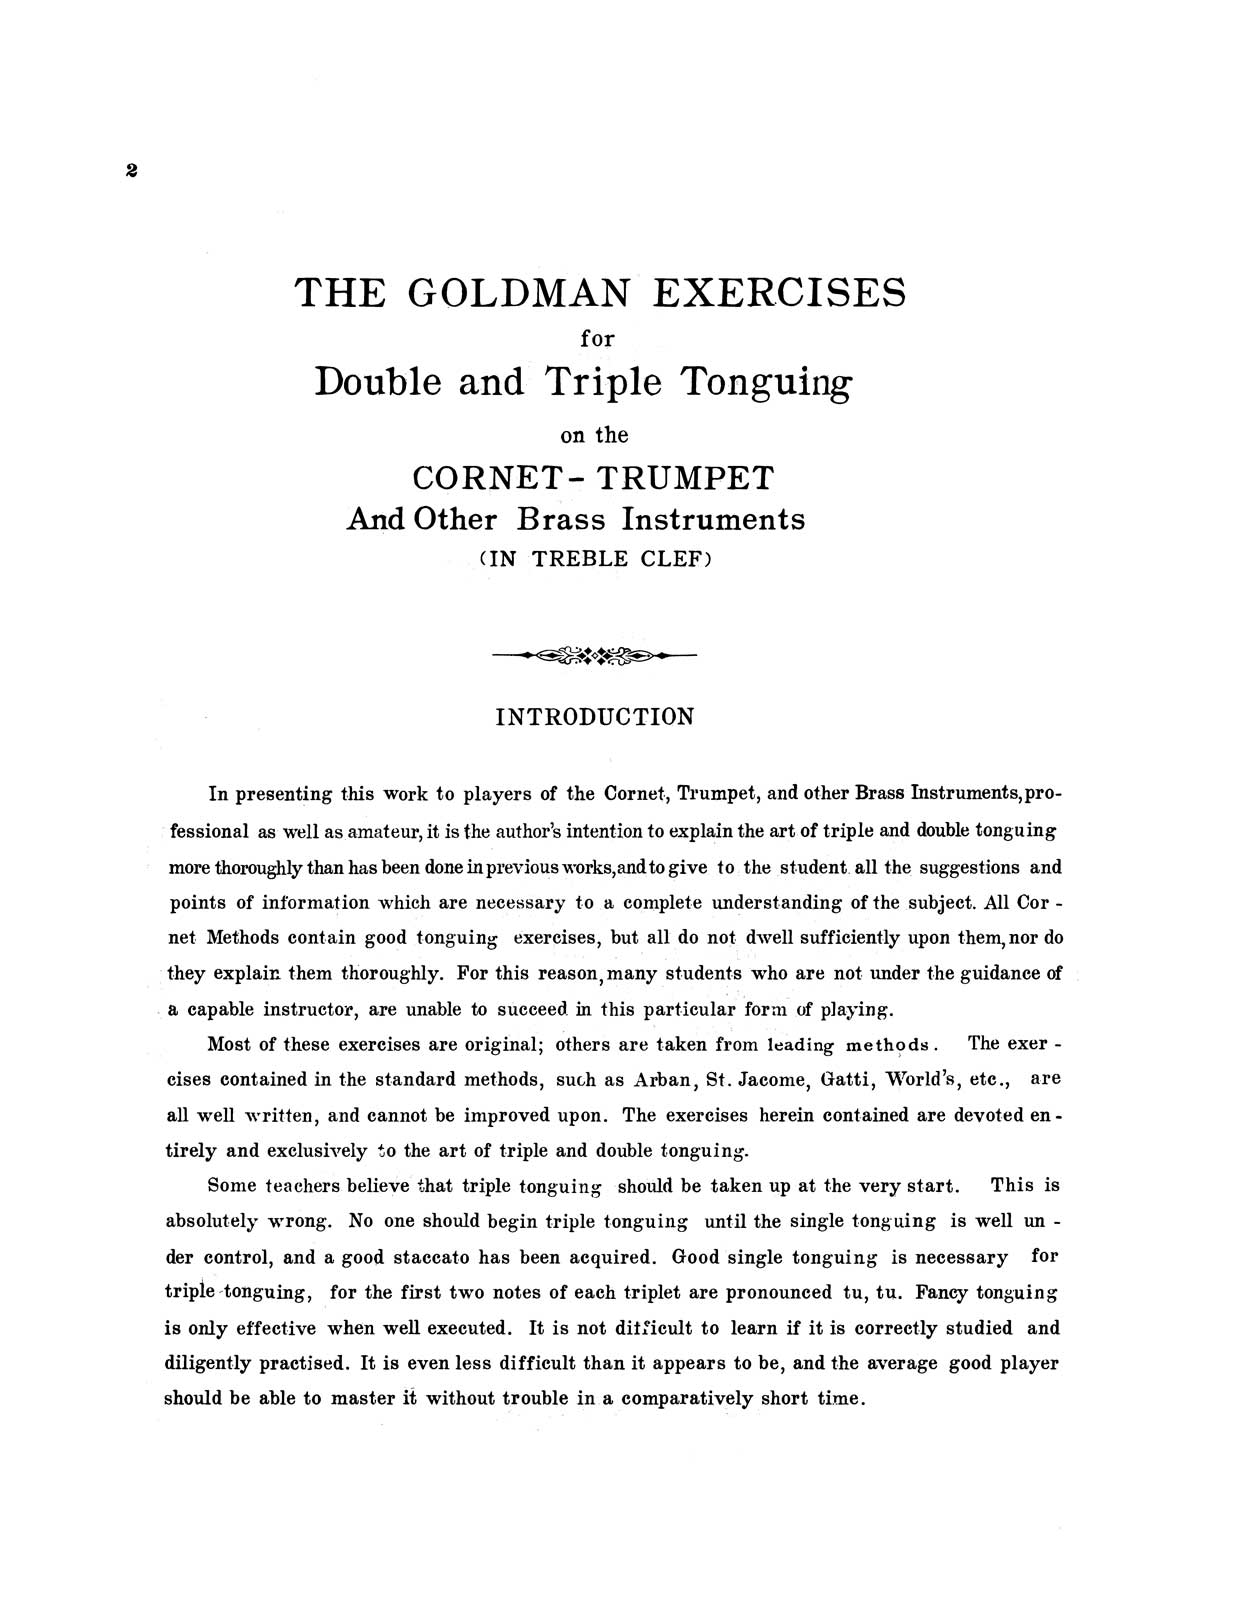 Exercises for Double and Triple Tonguing by Goldman, Edwin Franko | qPress